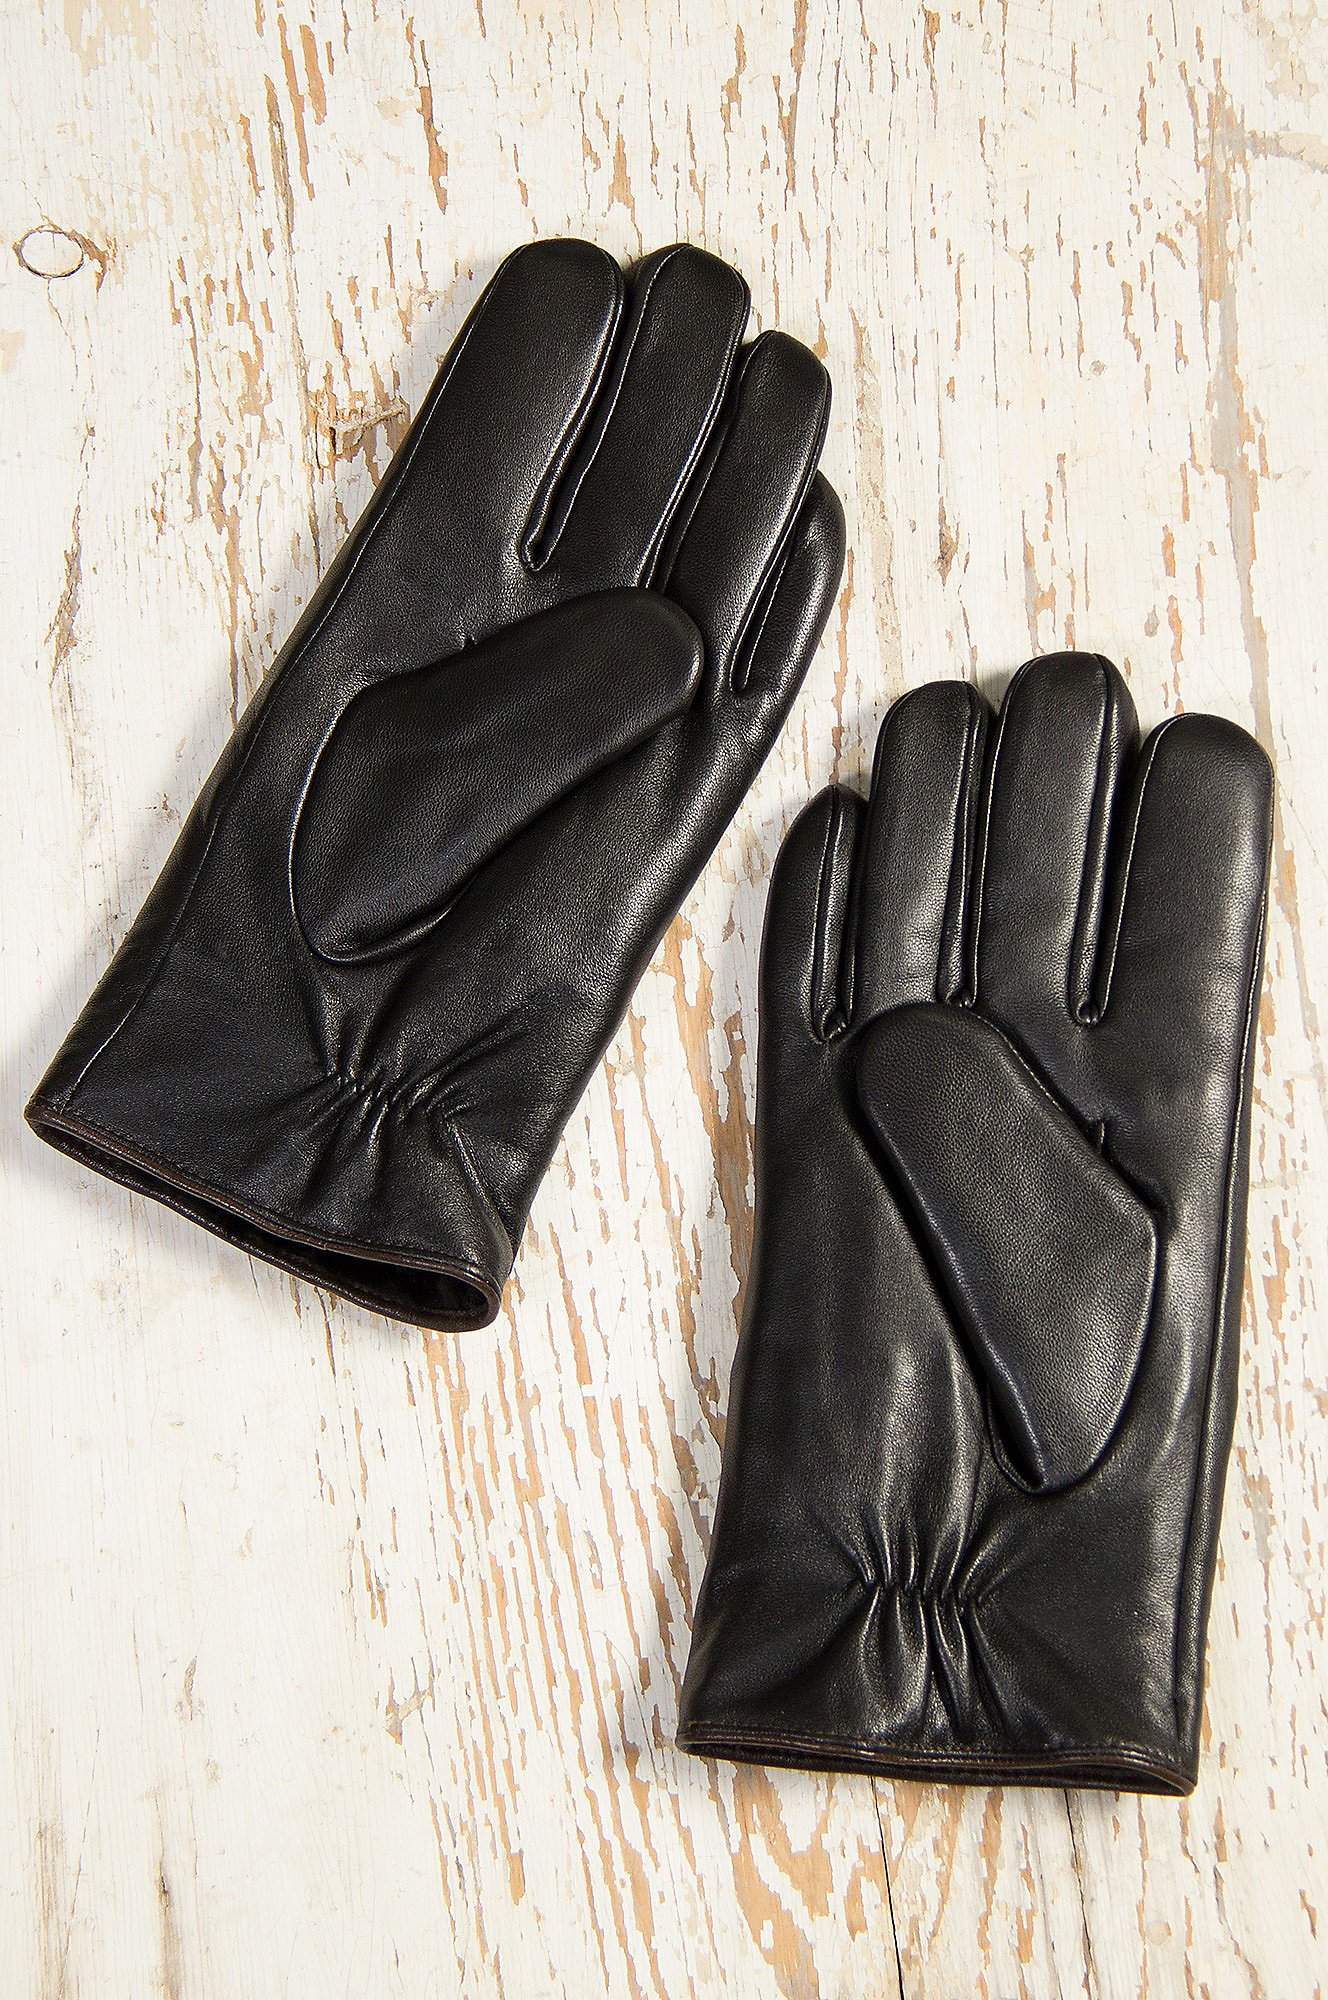 Men's Premium Lambskin Leather Gloves with Shearling Lining by Overland Sheepskin Co (Image #4)